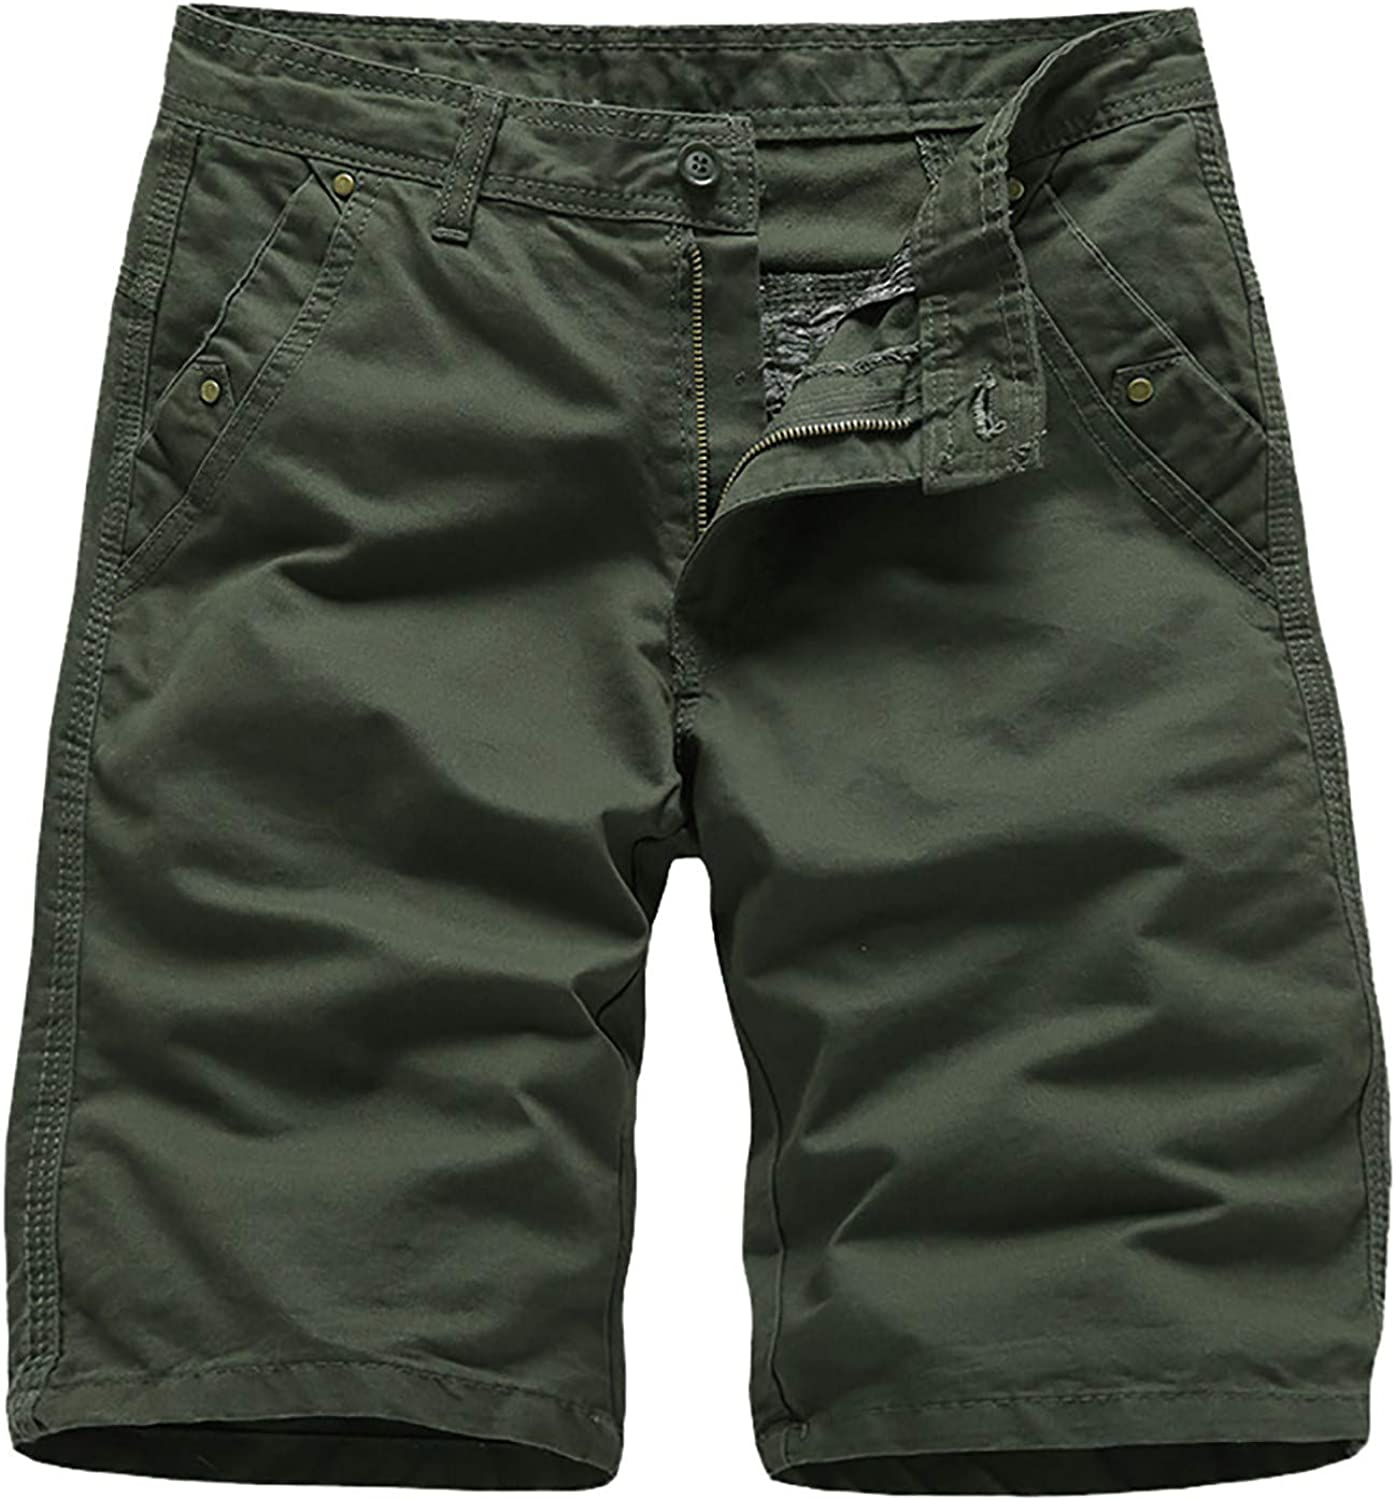 FUNEY Shorts for Men Casual Outdoor Summer Shorts Classic Relaxed Fit Cargo Short Comfy Workout Big and Tall Hiker Short